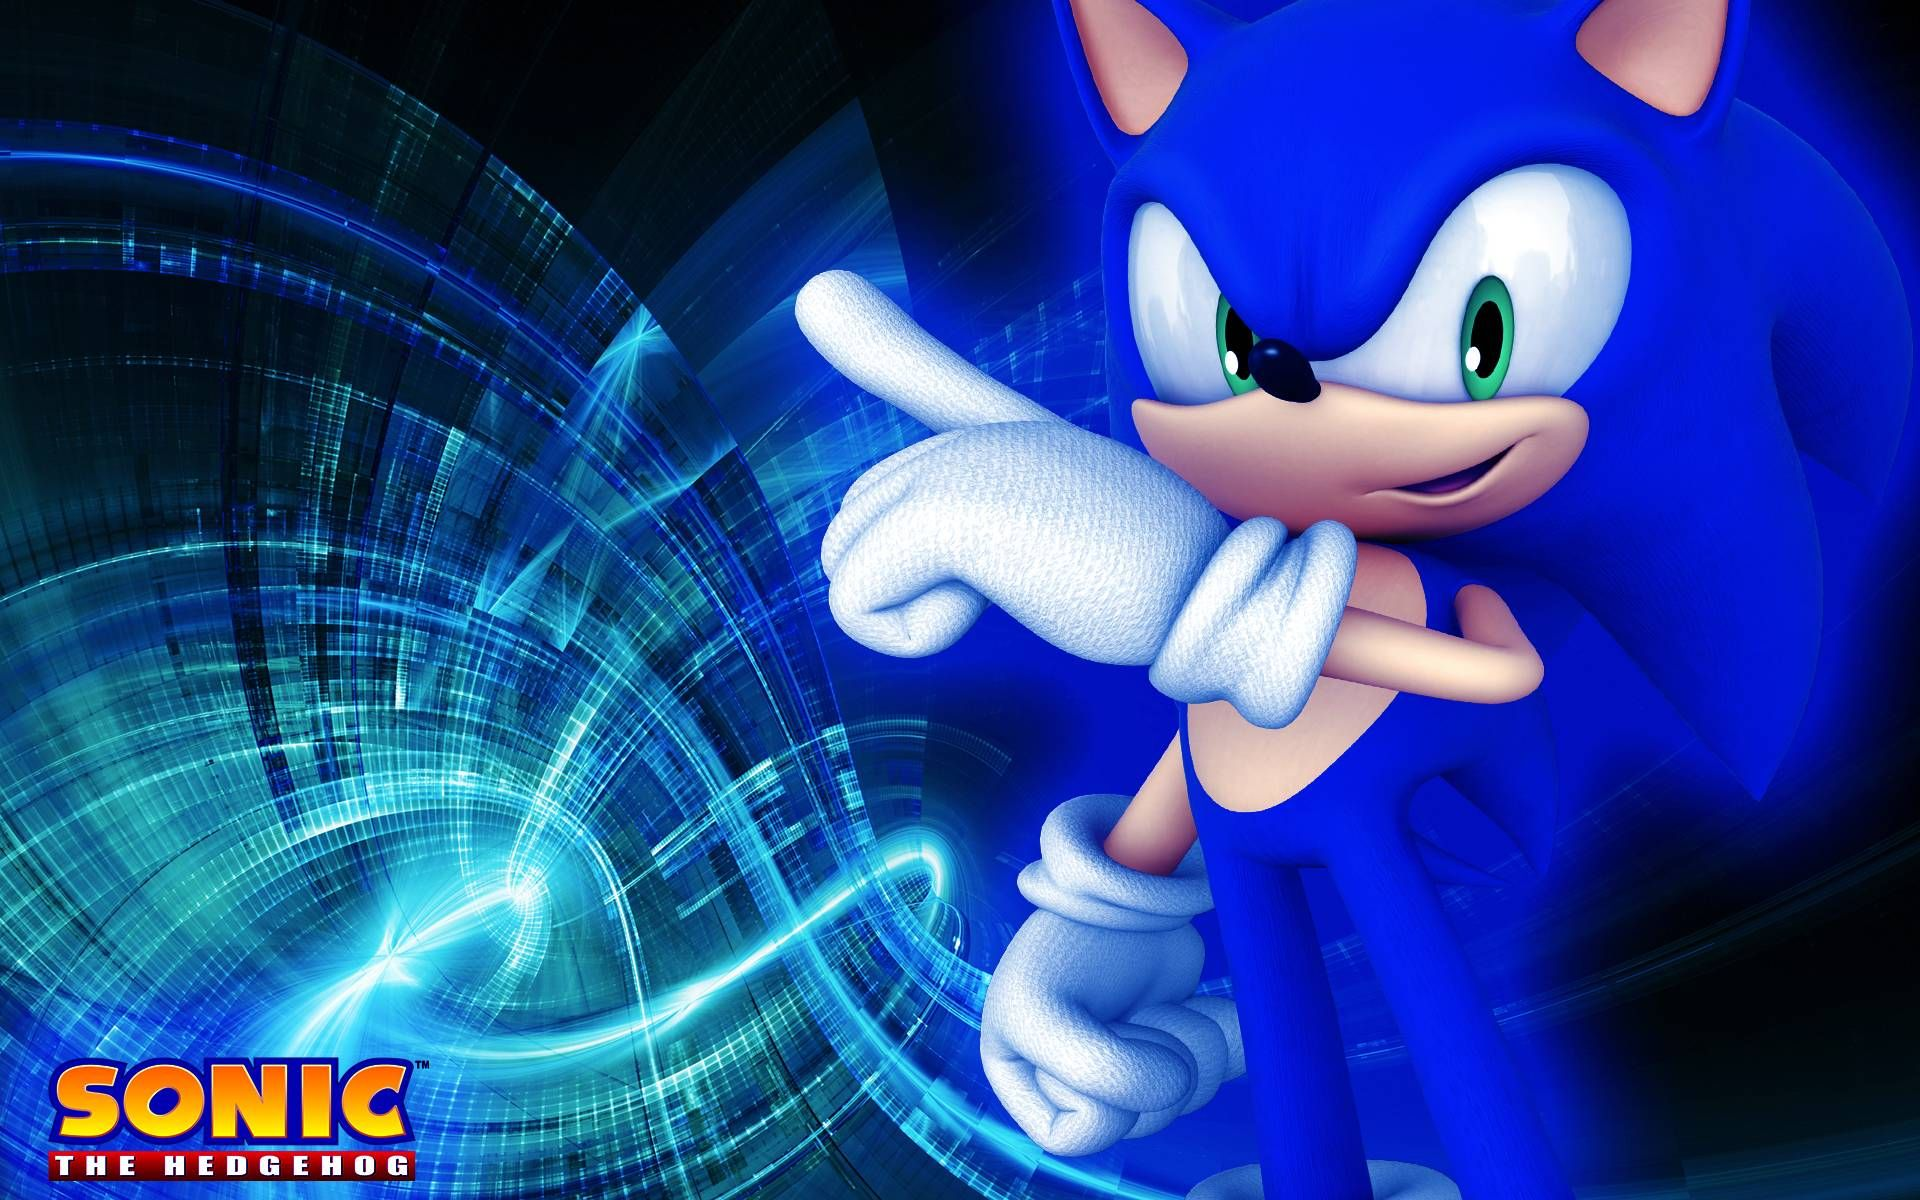 Sonic The Hedgehog Backgrounds Sonic The Hedgehog Live Wallpaper Iphone Sonic The Hedgehog 4